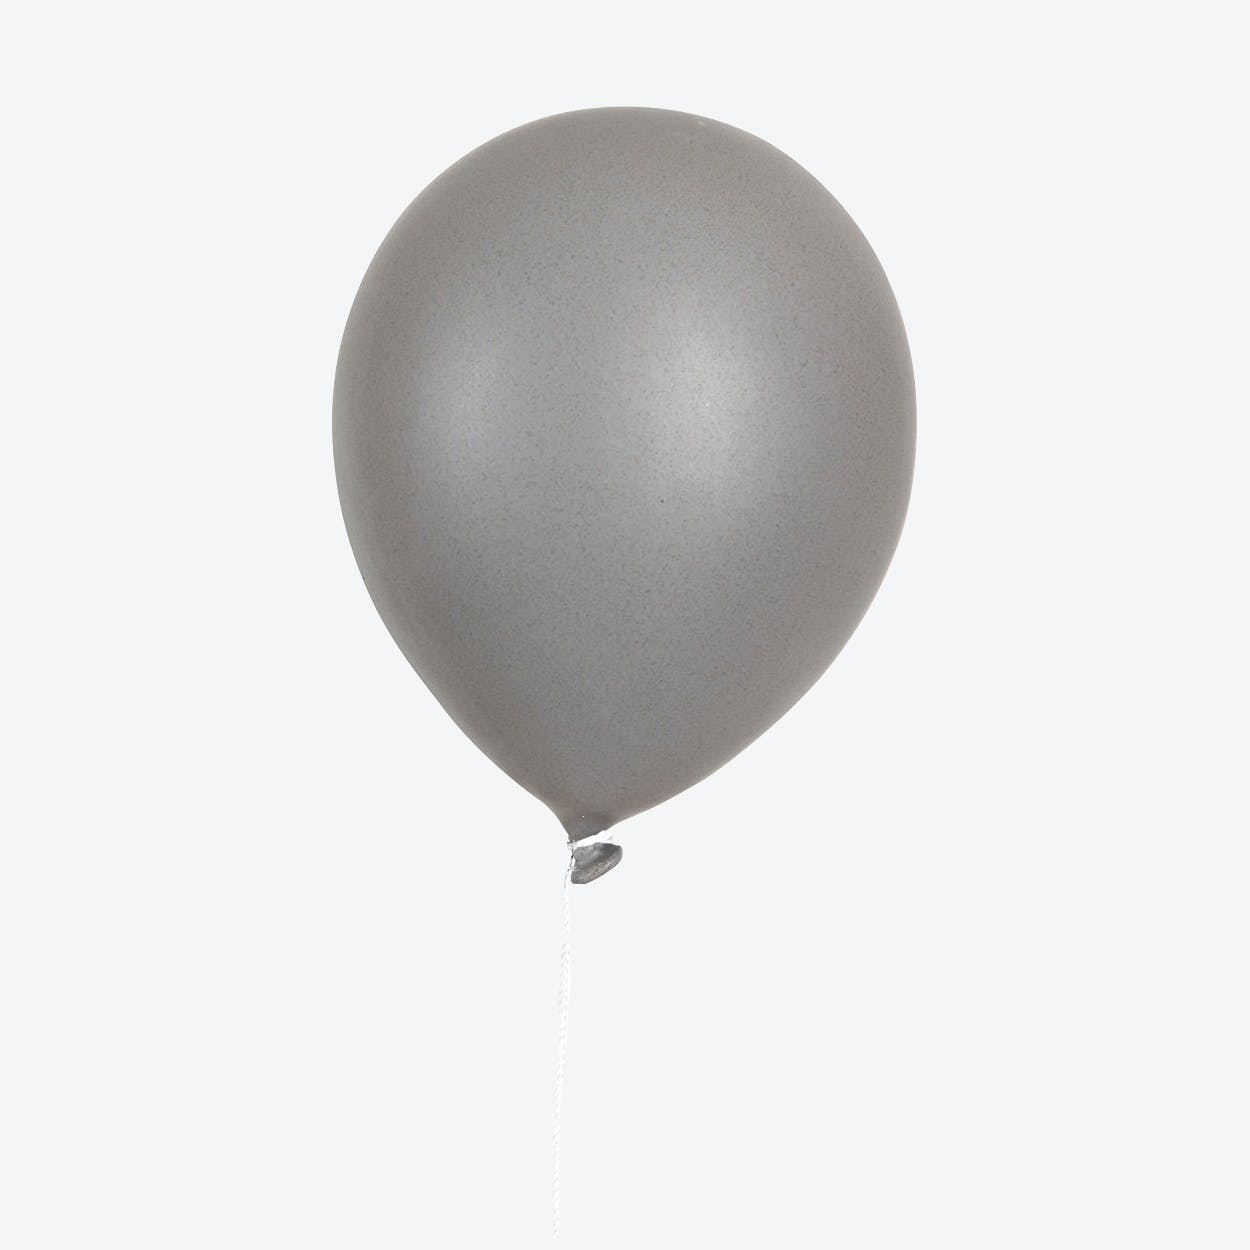 Ceramic Balloon Wall Decor in Grey